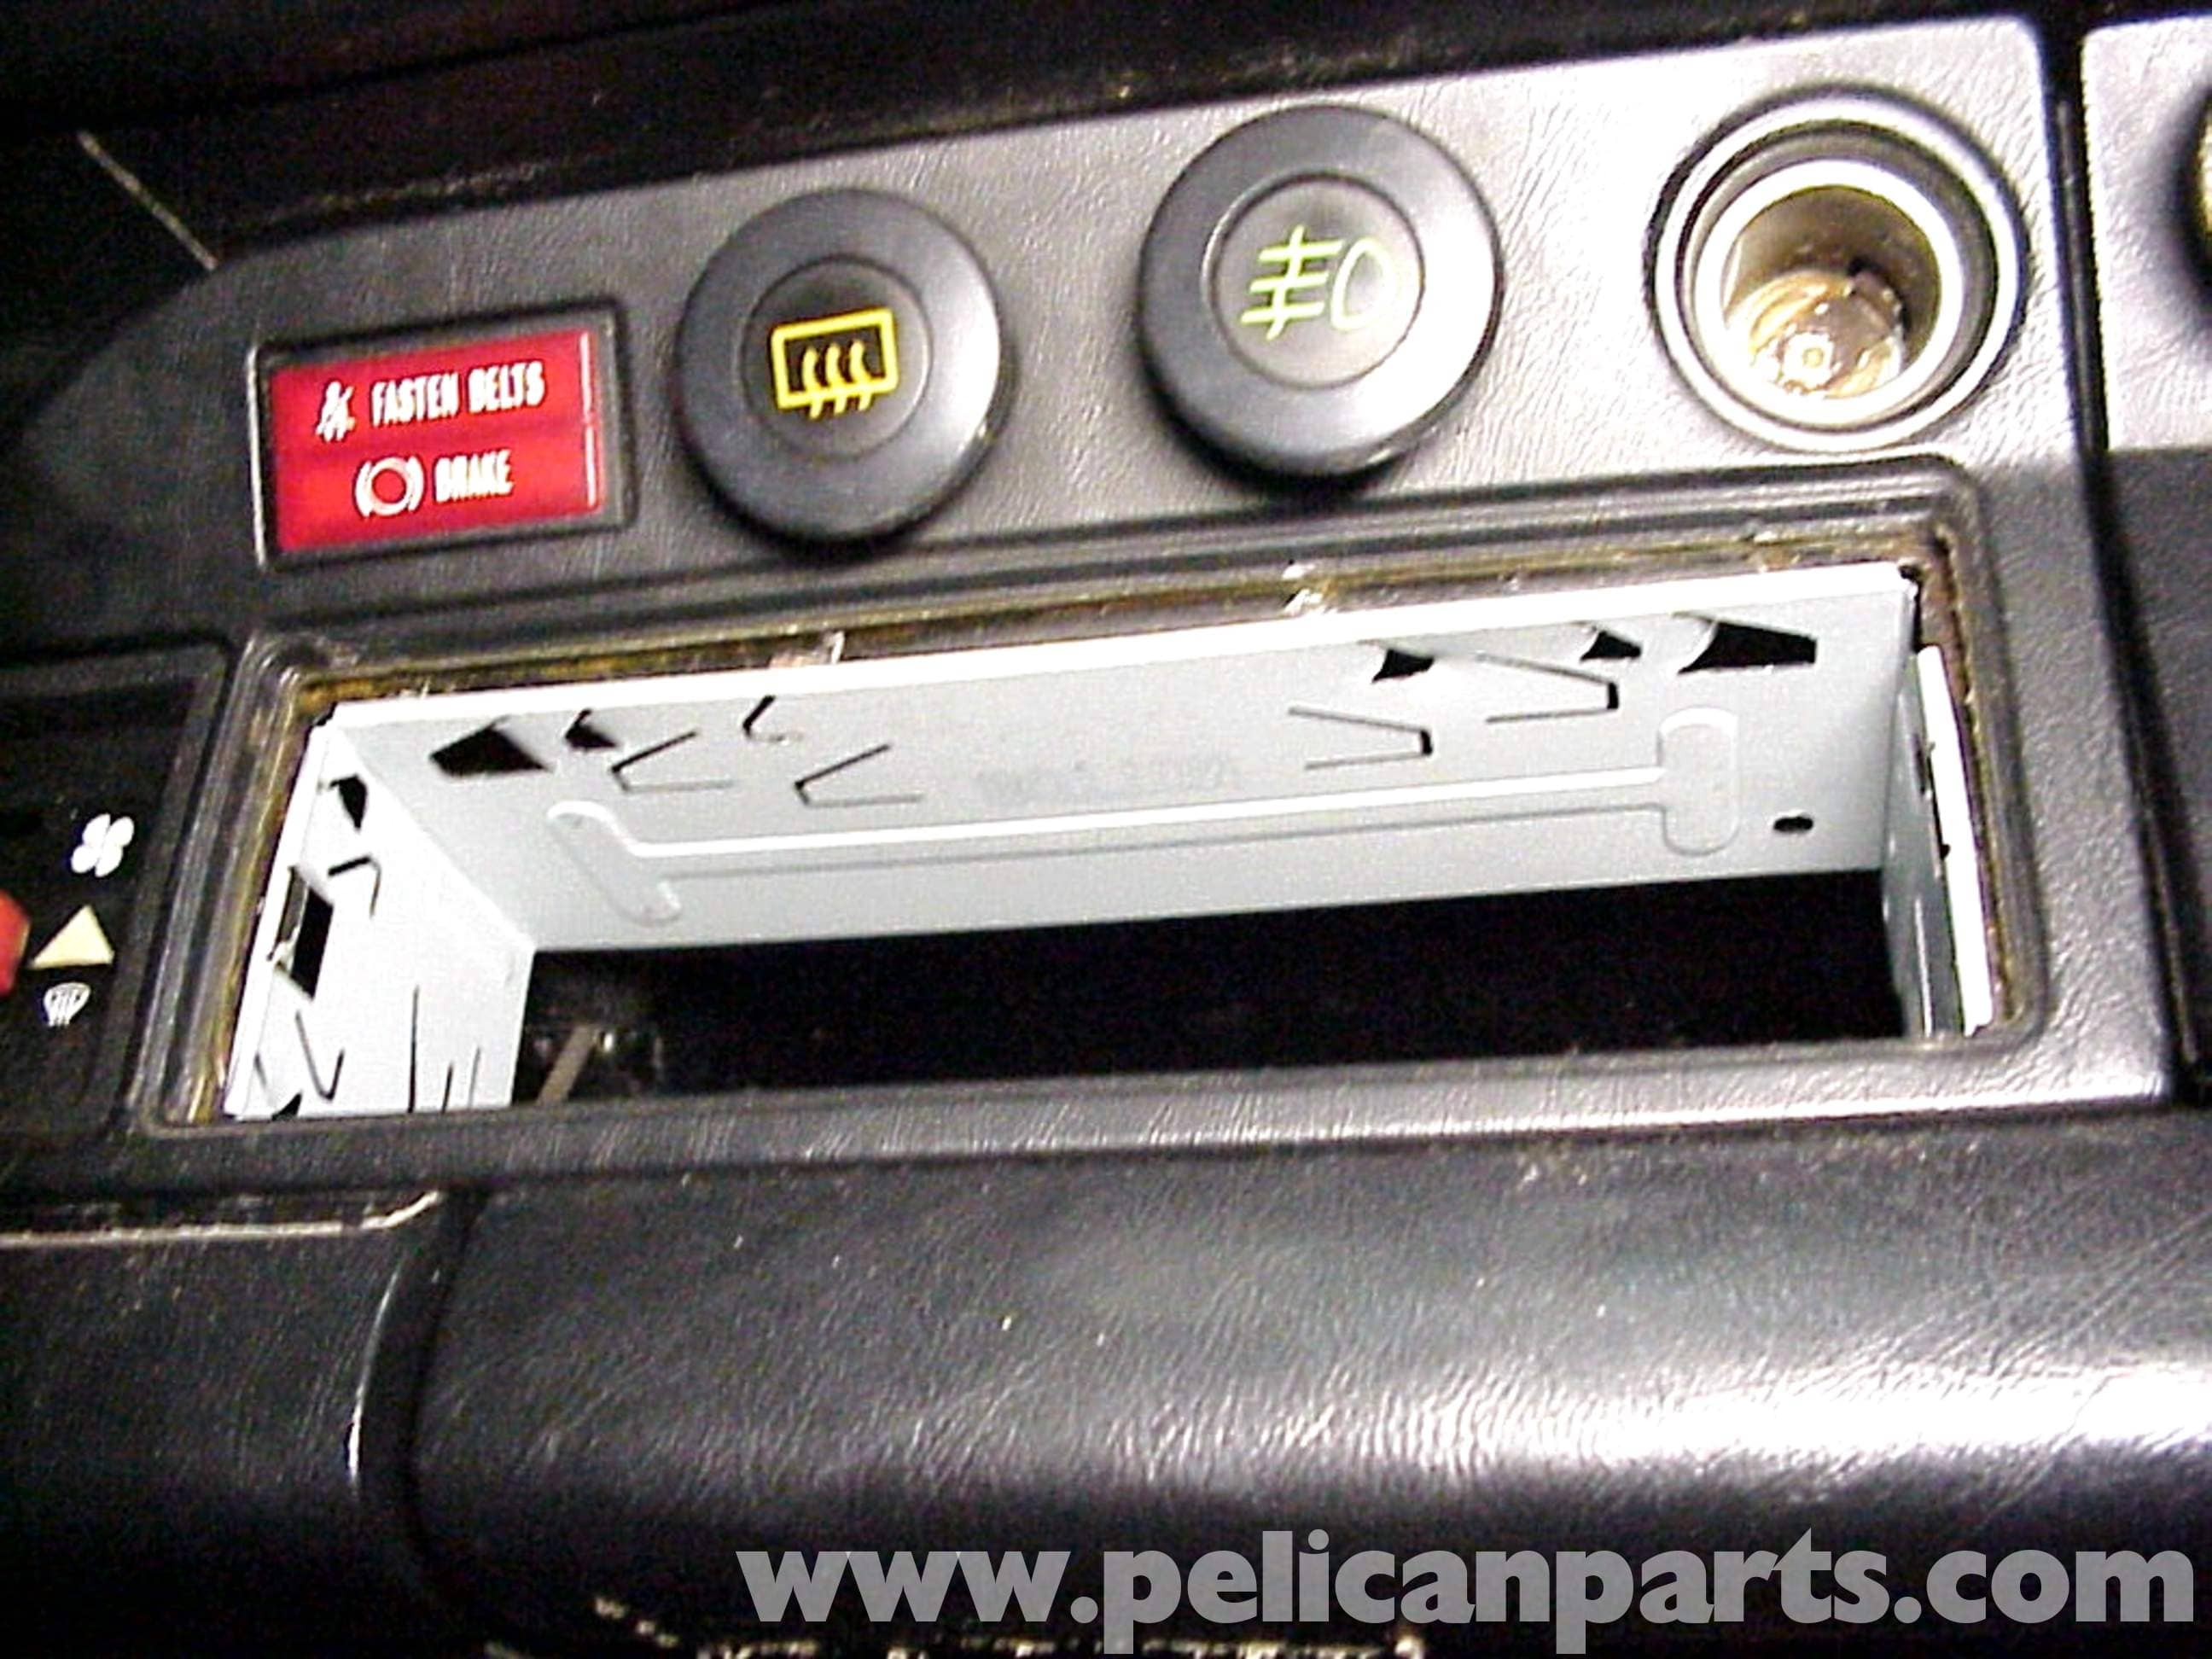 Rear Fuse Box Diagram Pelican Parts Technical Bbs Just Another Porsche 911t Wiring 911 Stereo Installation 1965 89 930 Turbo 1975 Rh Pelicanparts Com